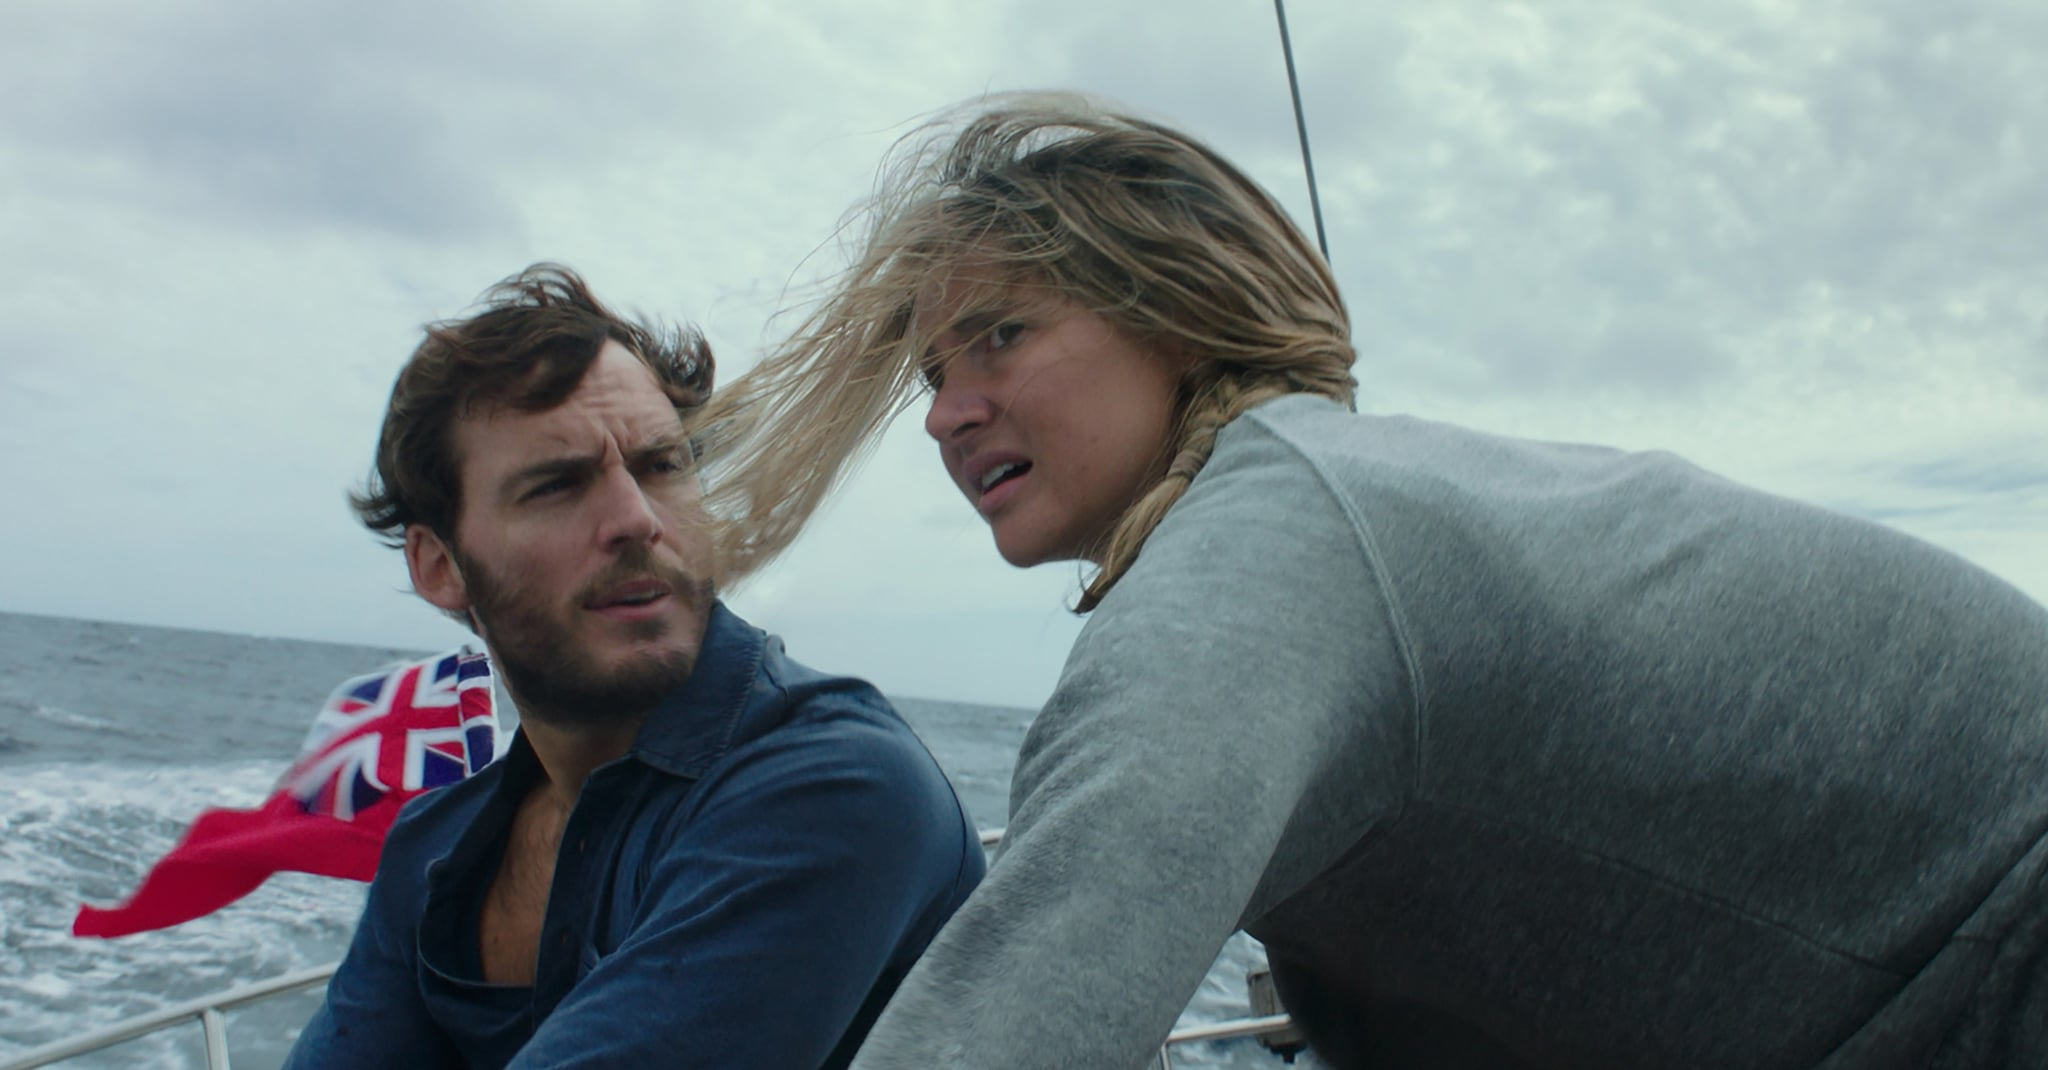 Shailene Woodley and Sam Claflin are going to make you rethink your  daydream about sailing around the world when their new movie, Adrift,  premieres on June